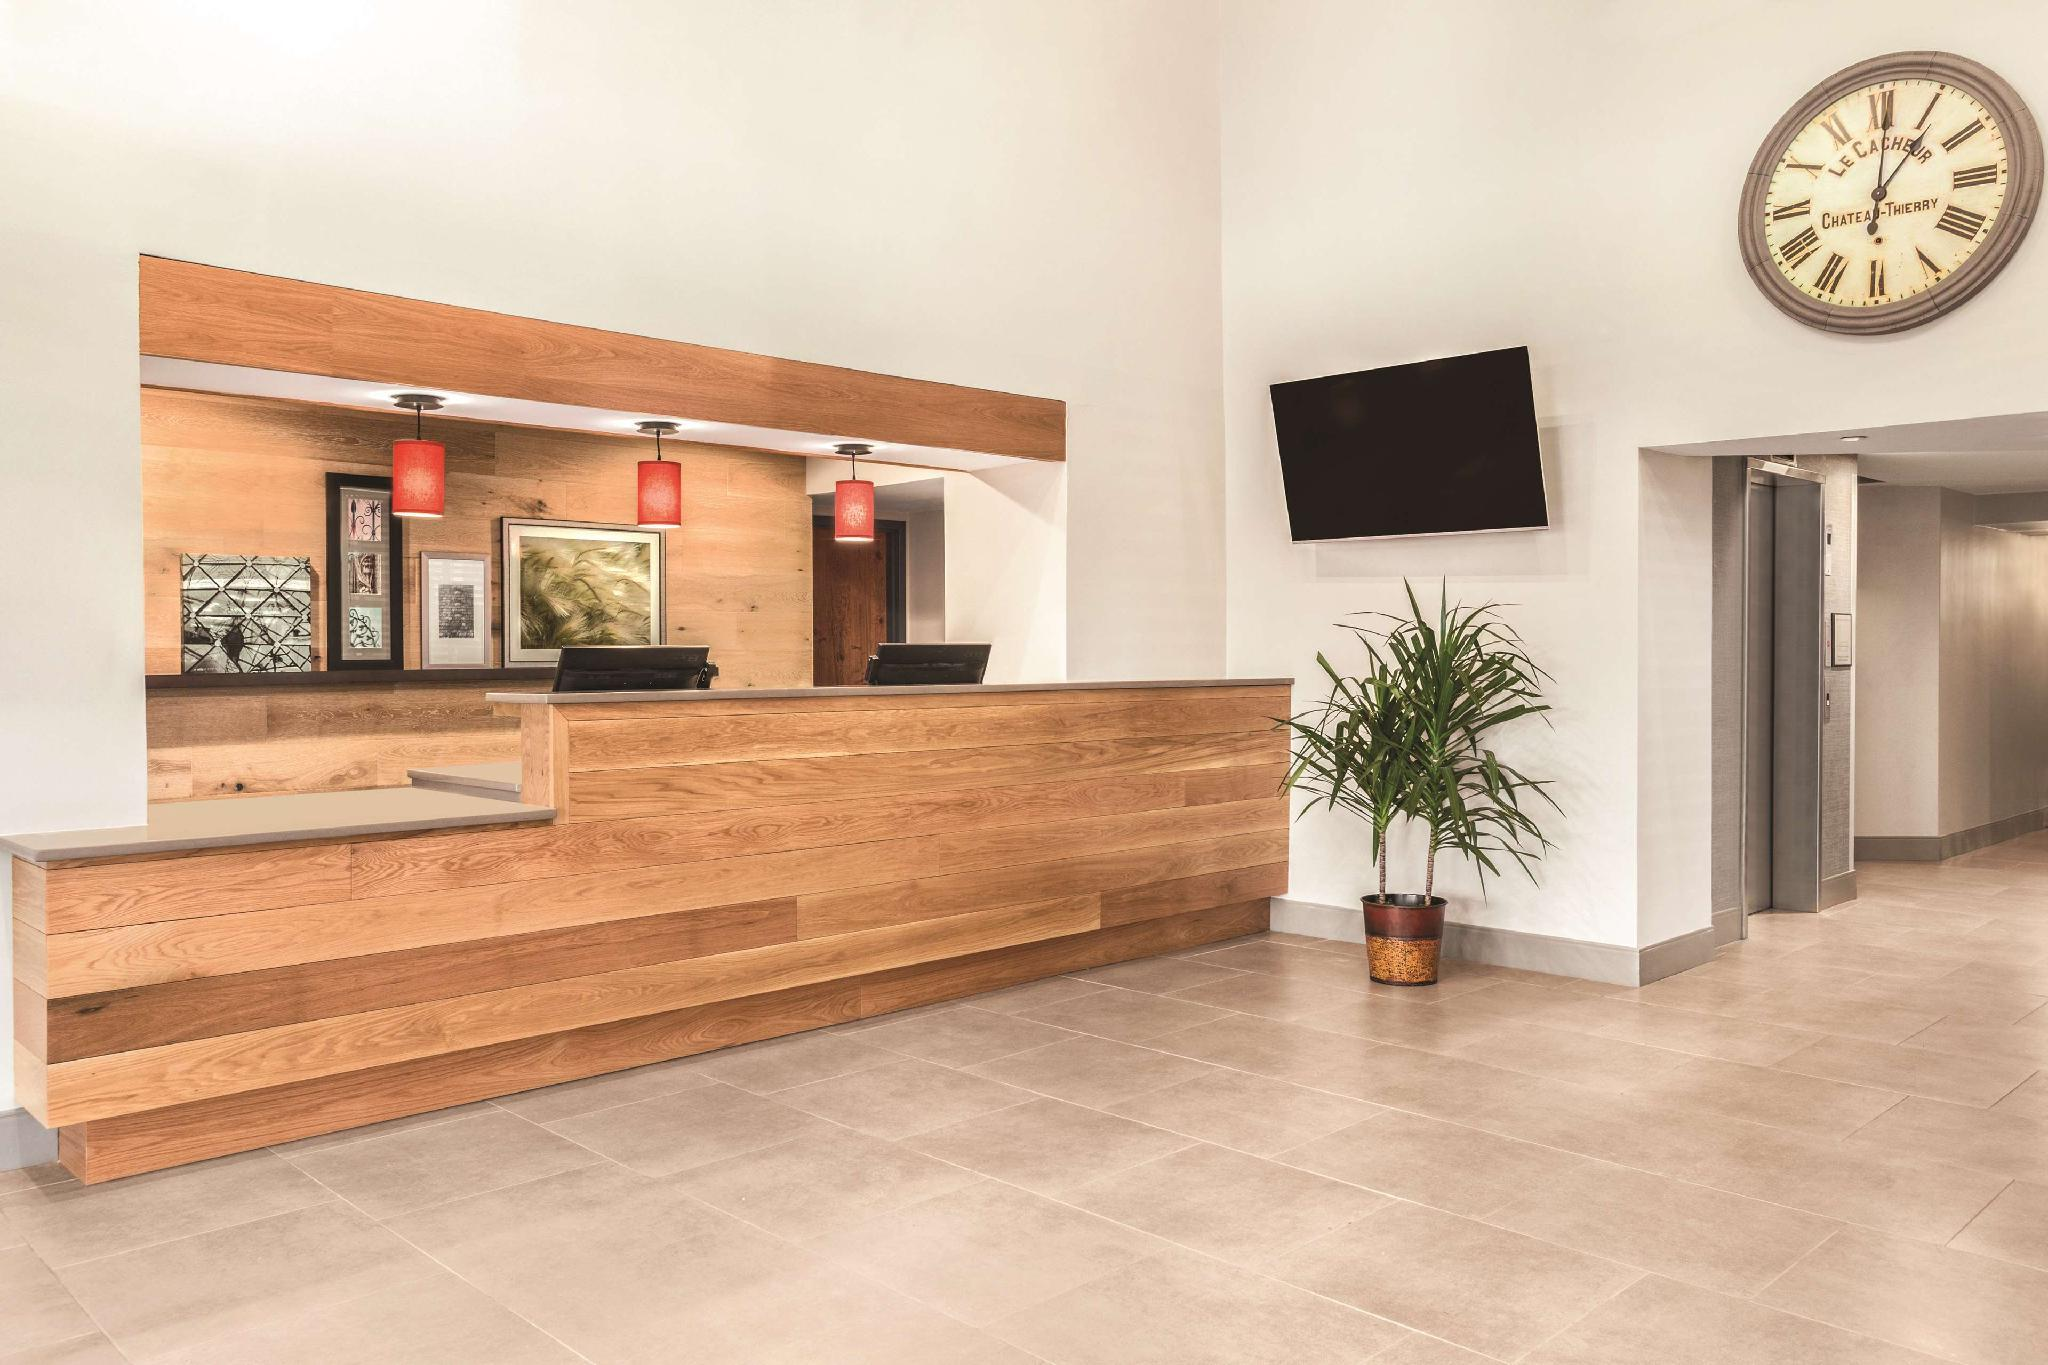 Country Inn & Suites by Radisson Erie PA, Erie